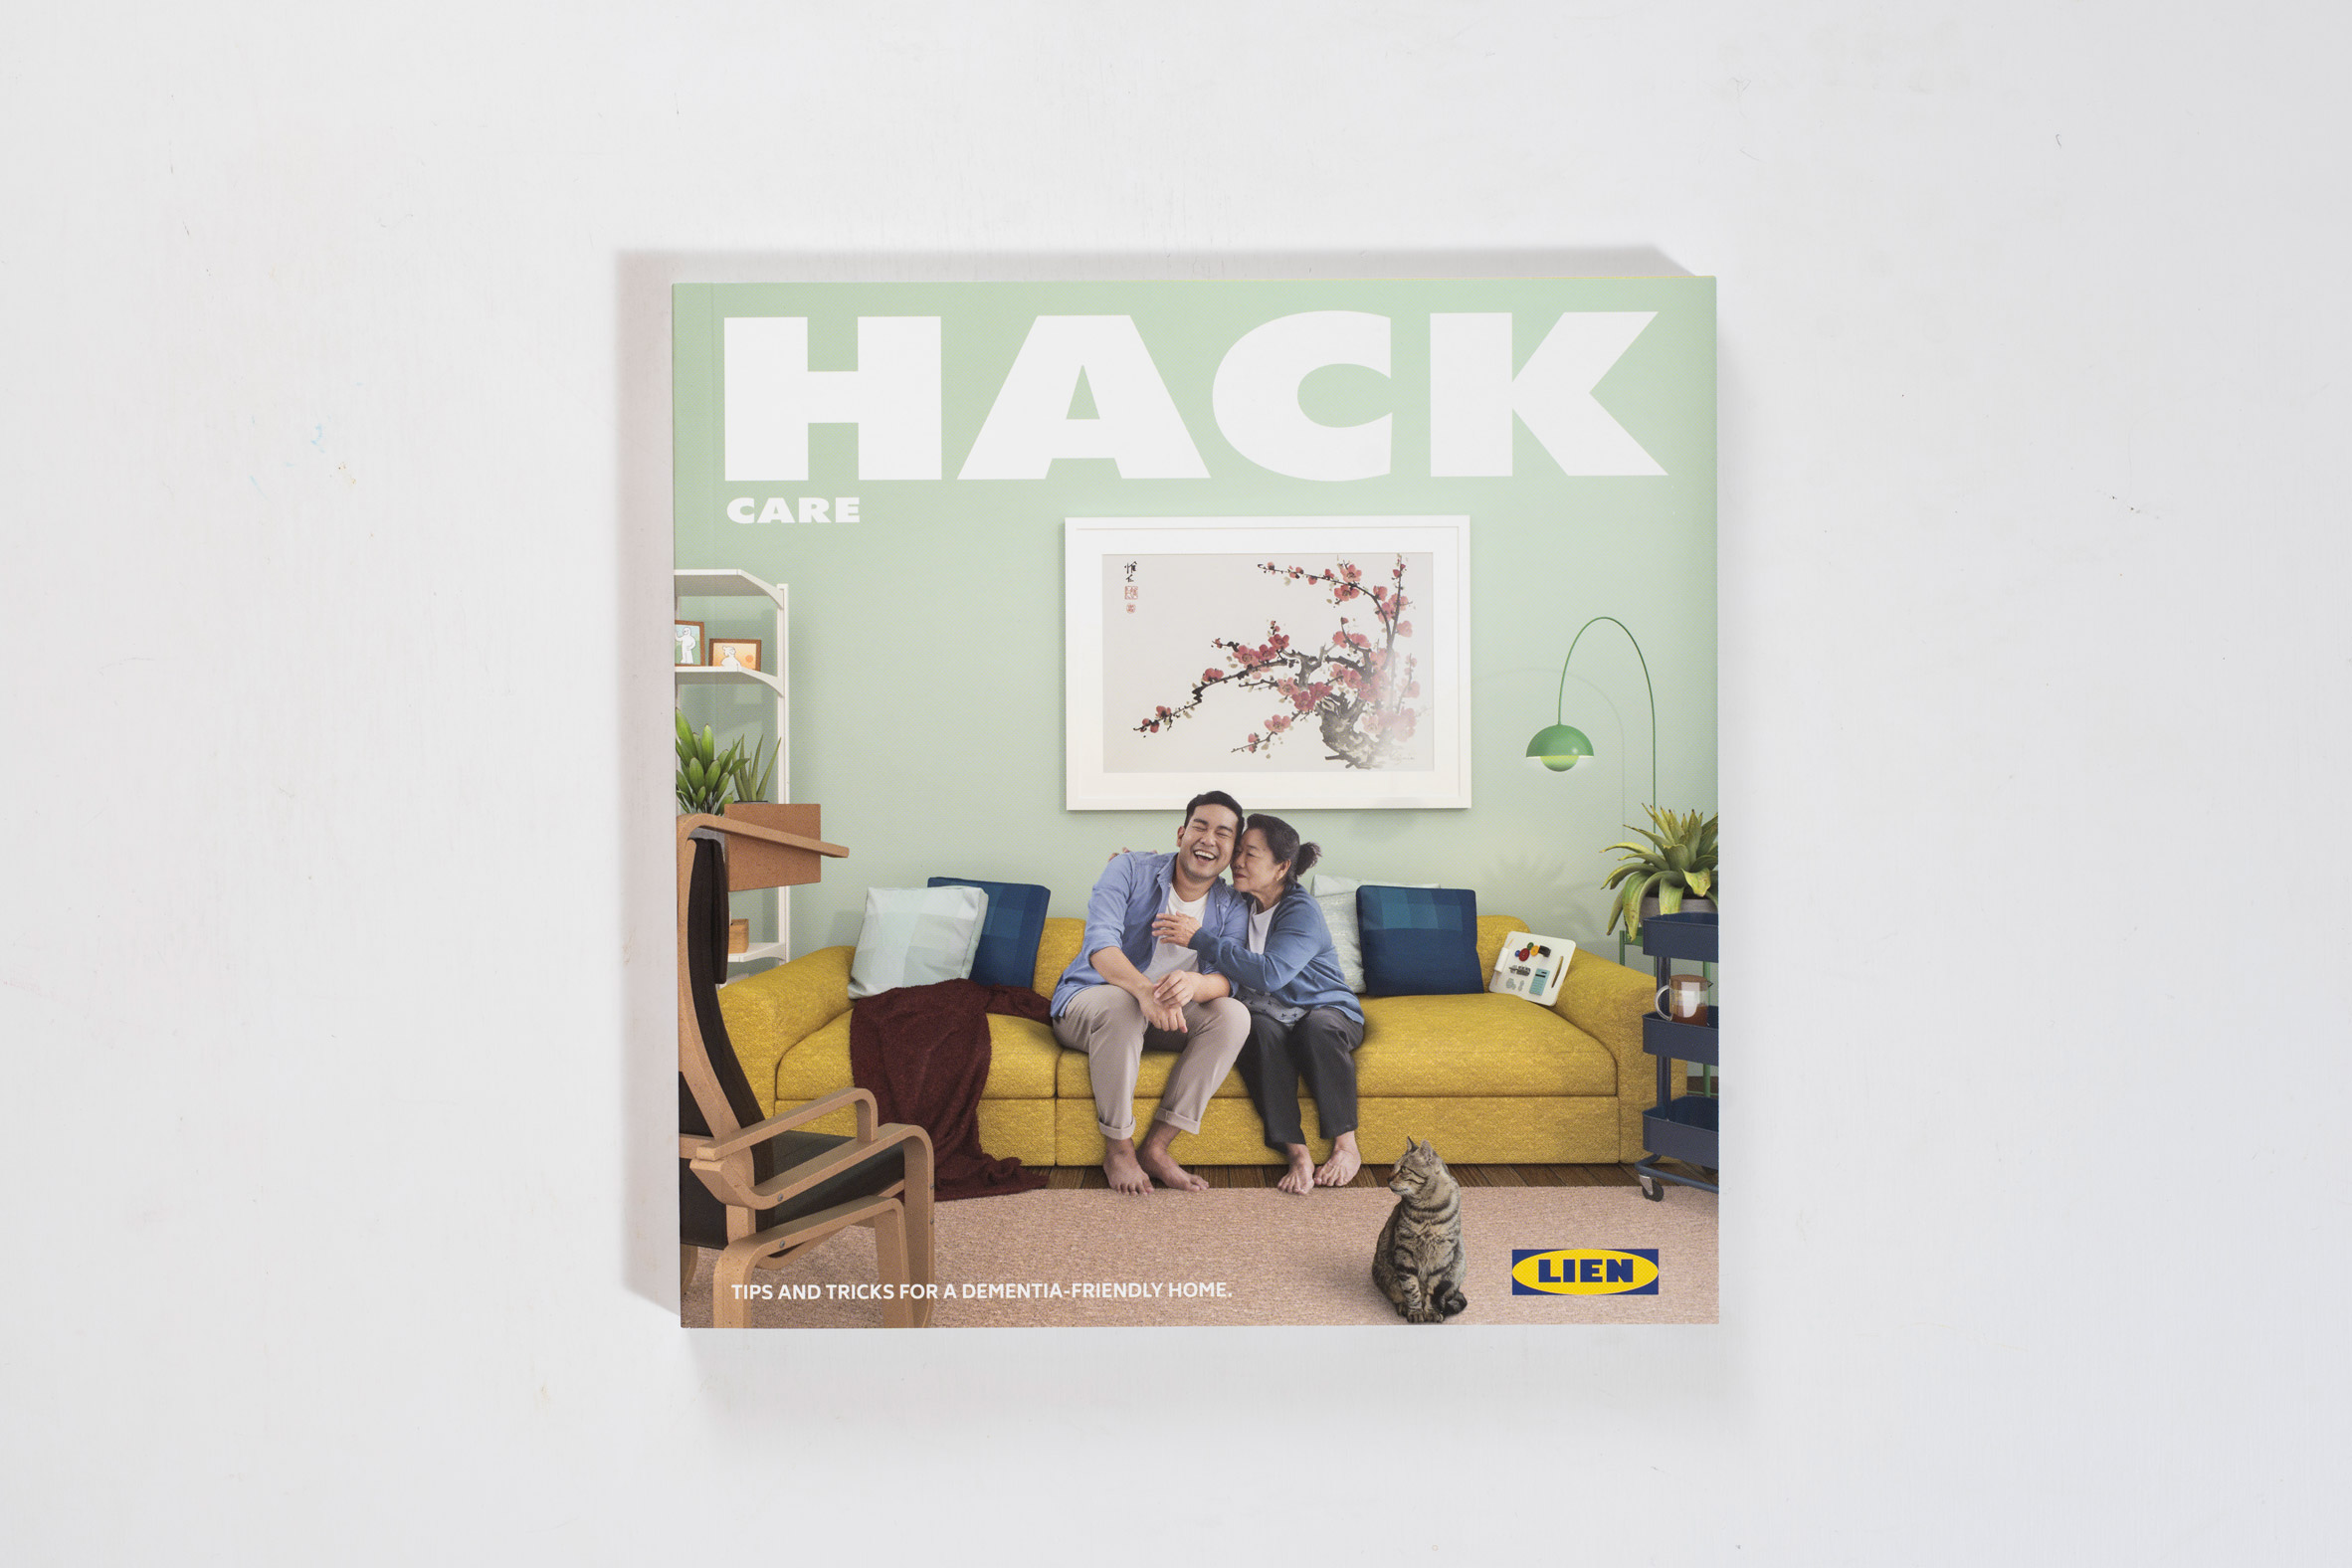 Hack Care book by Lekker Architects, Lanzavecchia + Wai and the Lien Foundation